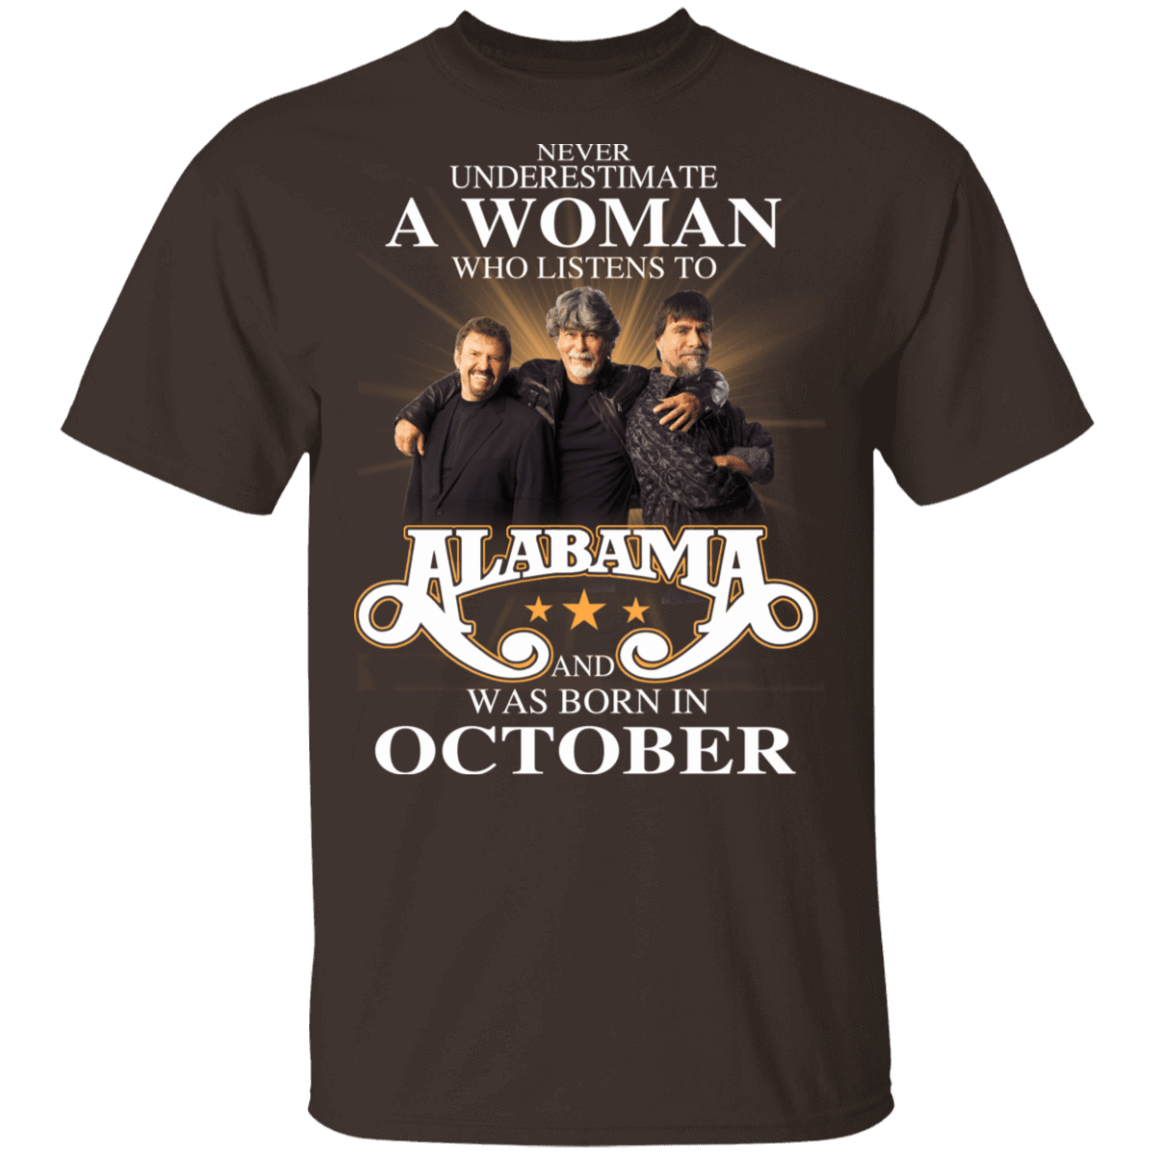 A Woman Who Listens To Alabama And Was Born In October T-Shirts, Hoodies, Tank 1049-9956-81138097-48152 - Tee Ript